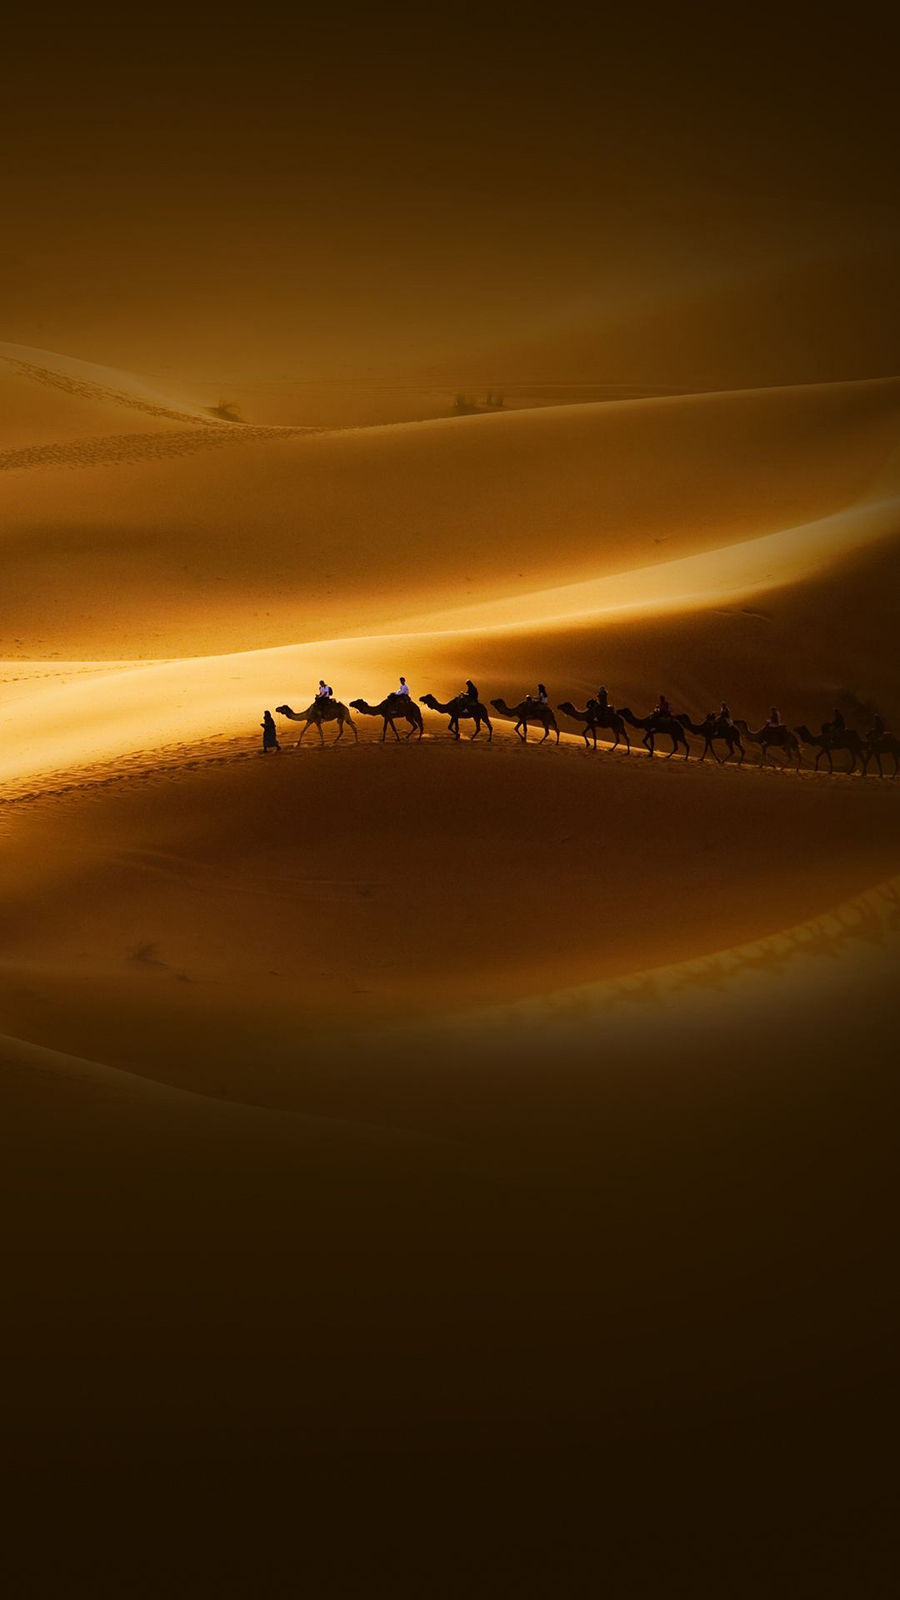 Desert Sunset Riders Camels Wallpapers Free Download